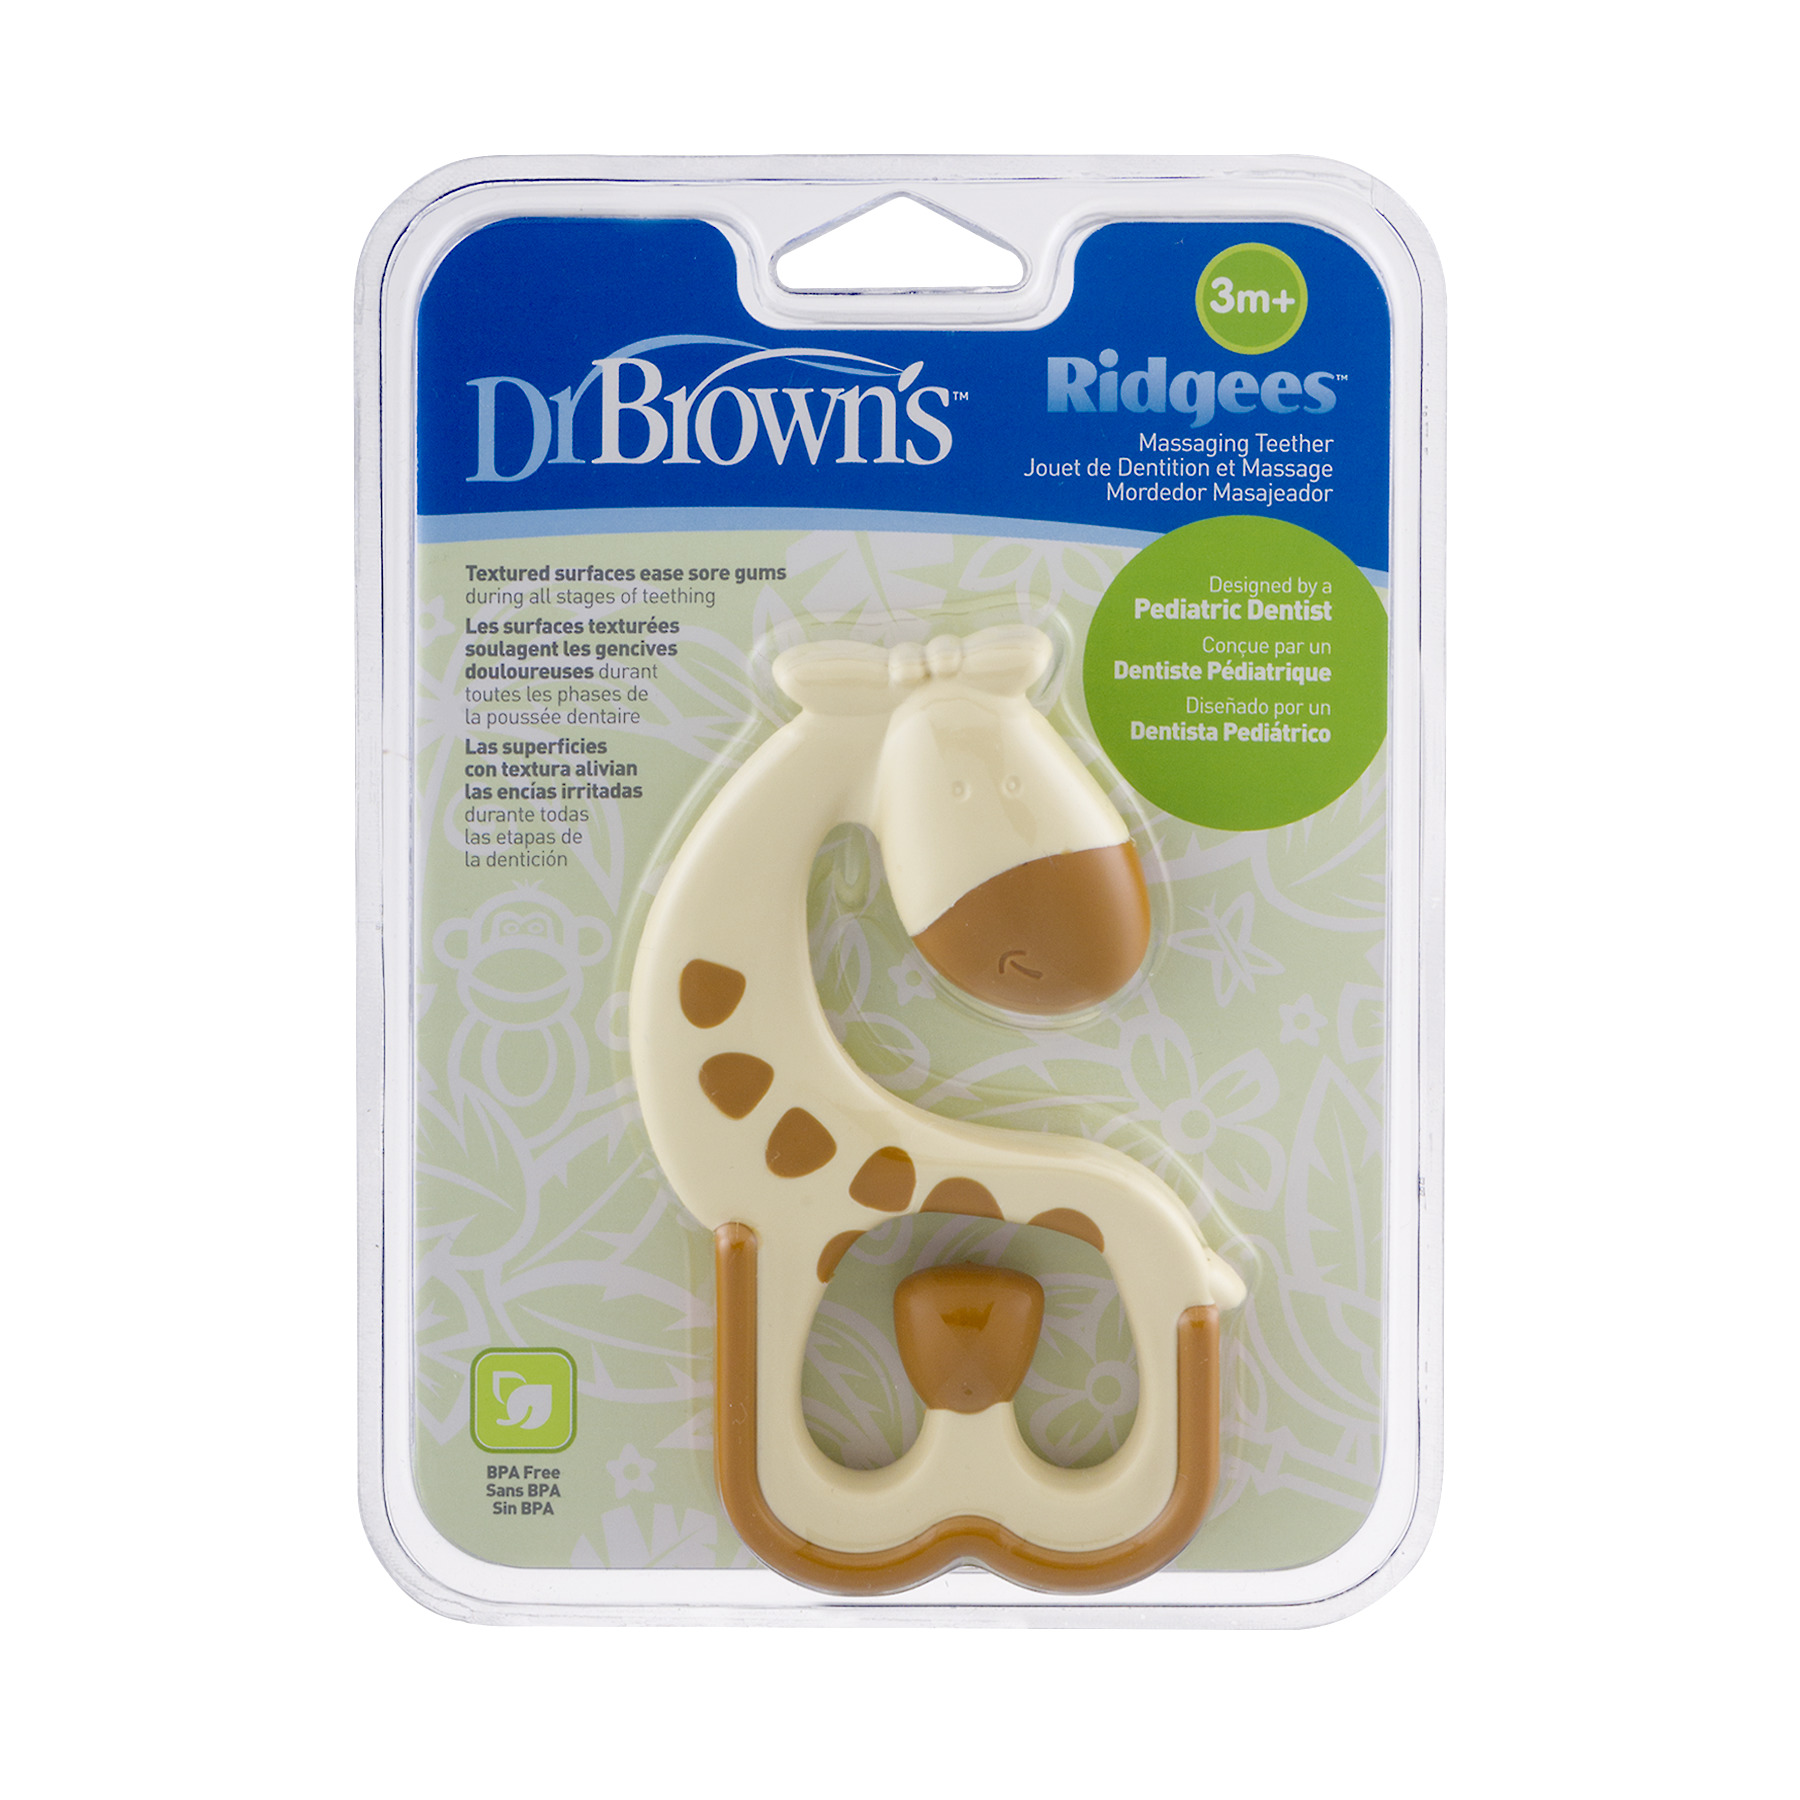 Dr Brown's Ridgees Massaging Teether 3m+, 1.0 CT